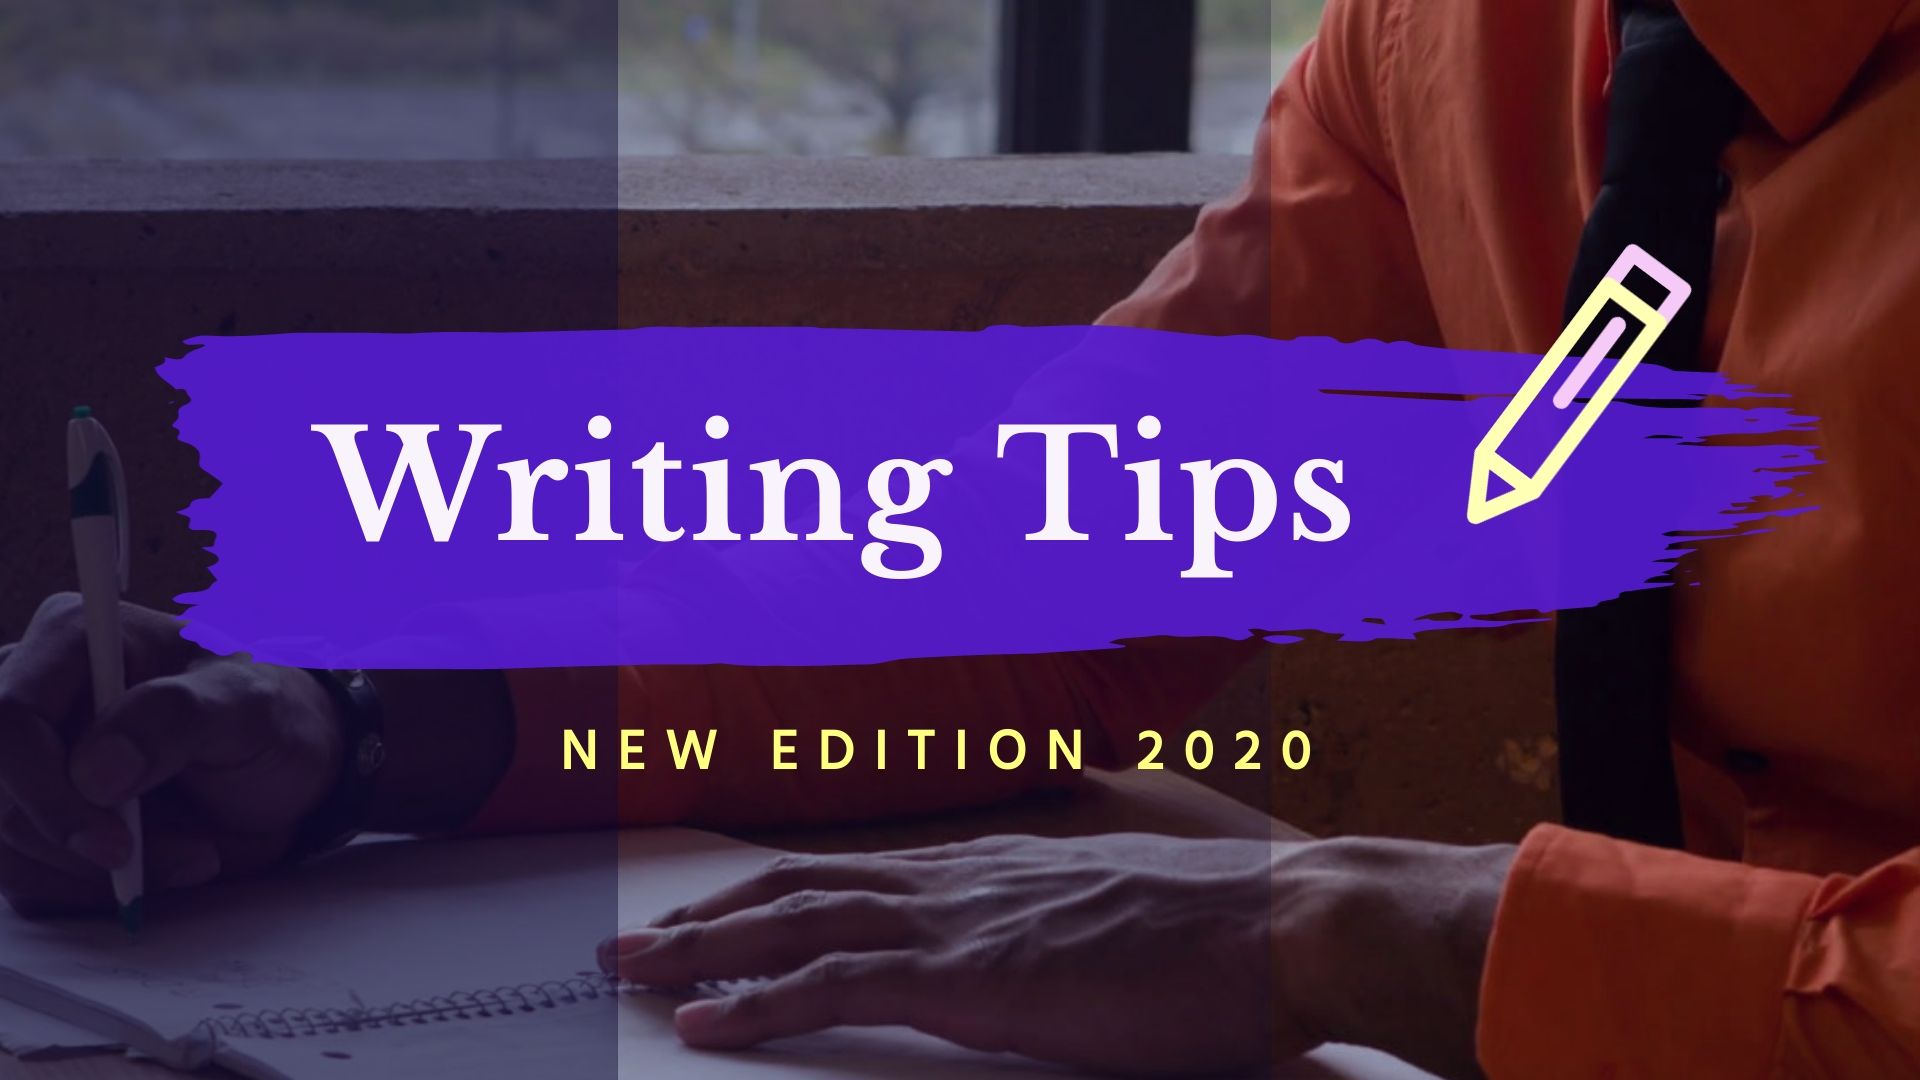 Writing Tips Intro - Video Template